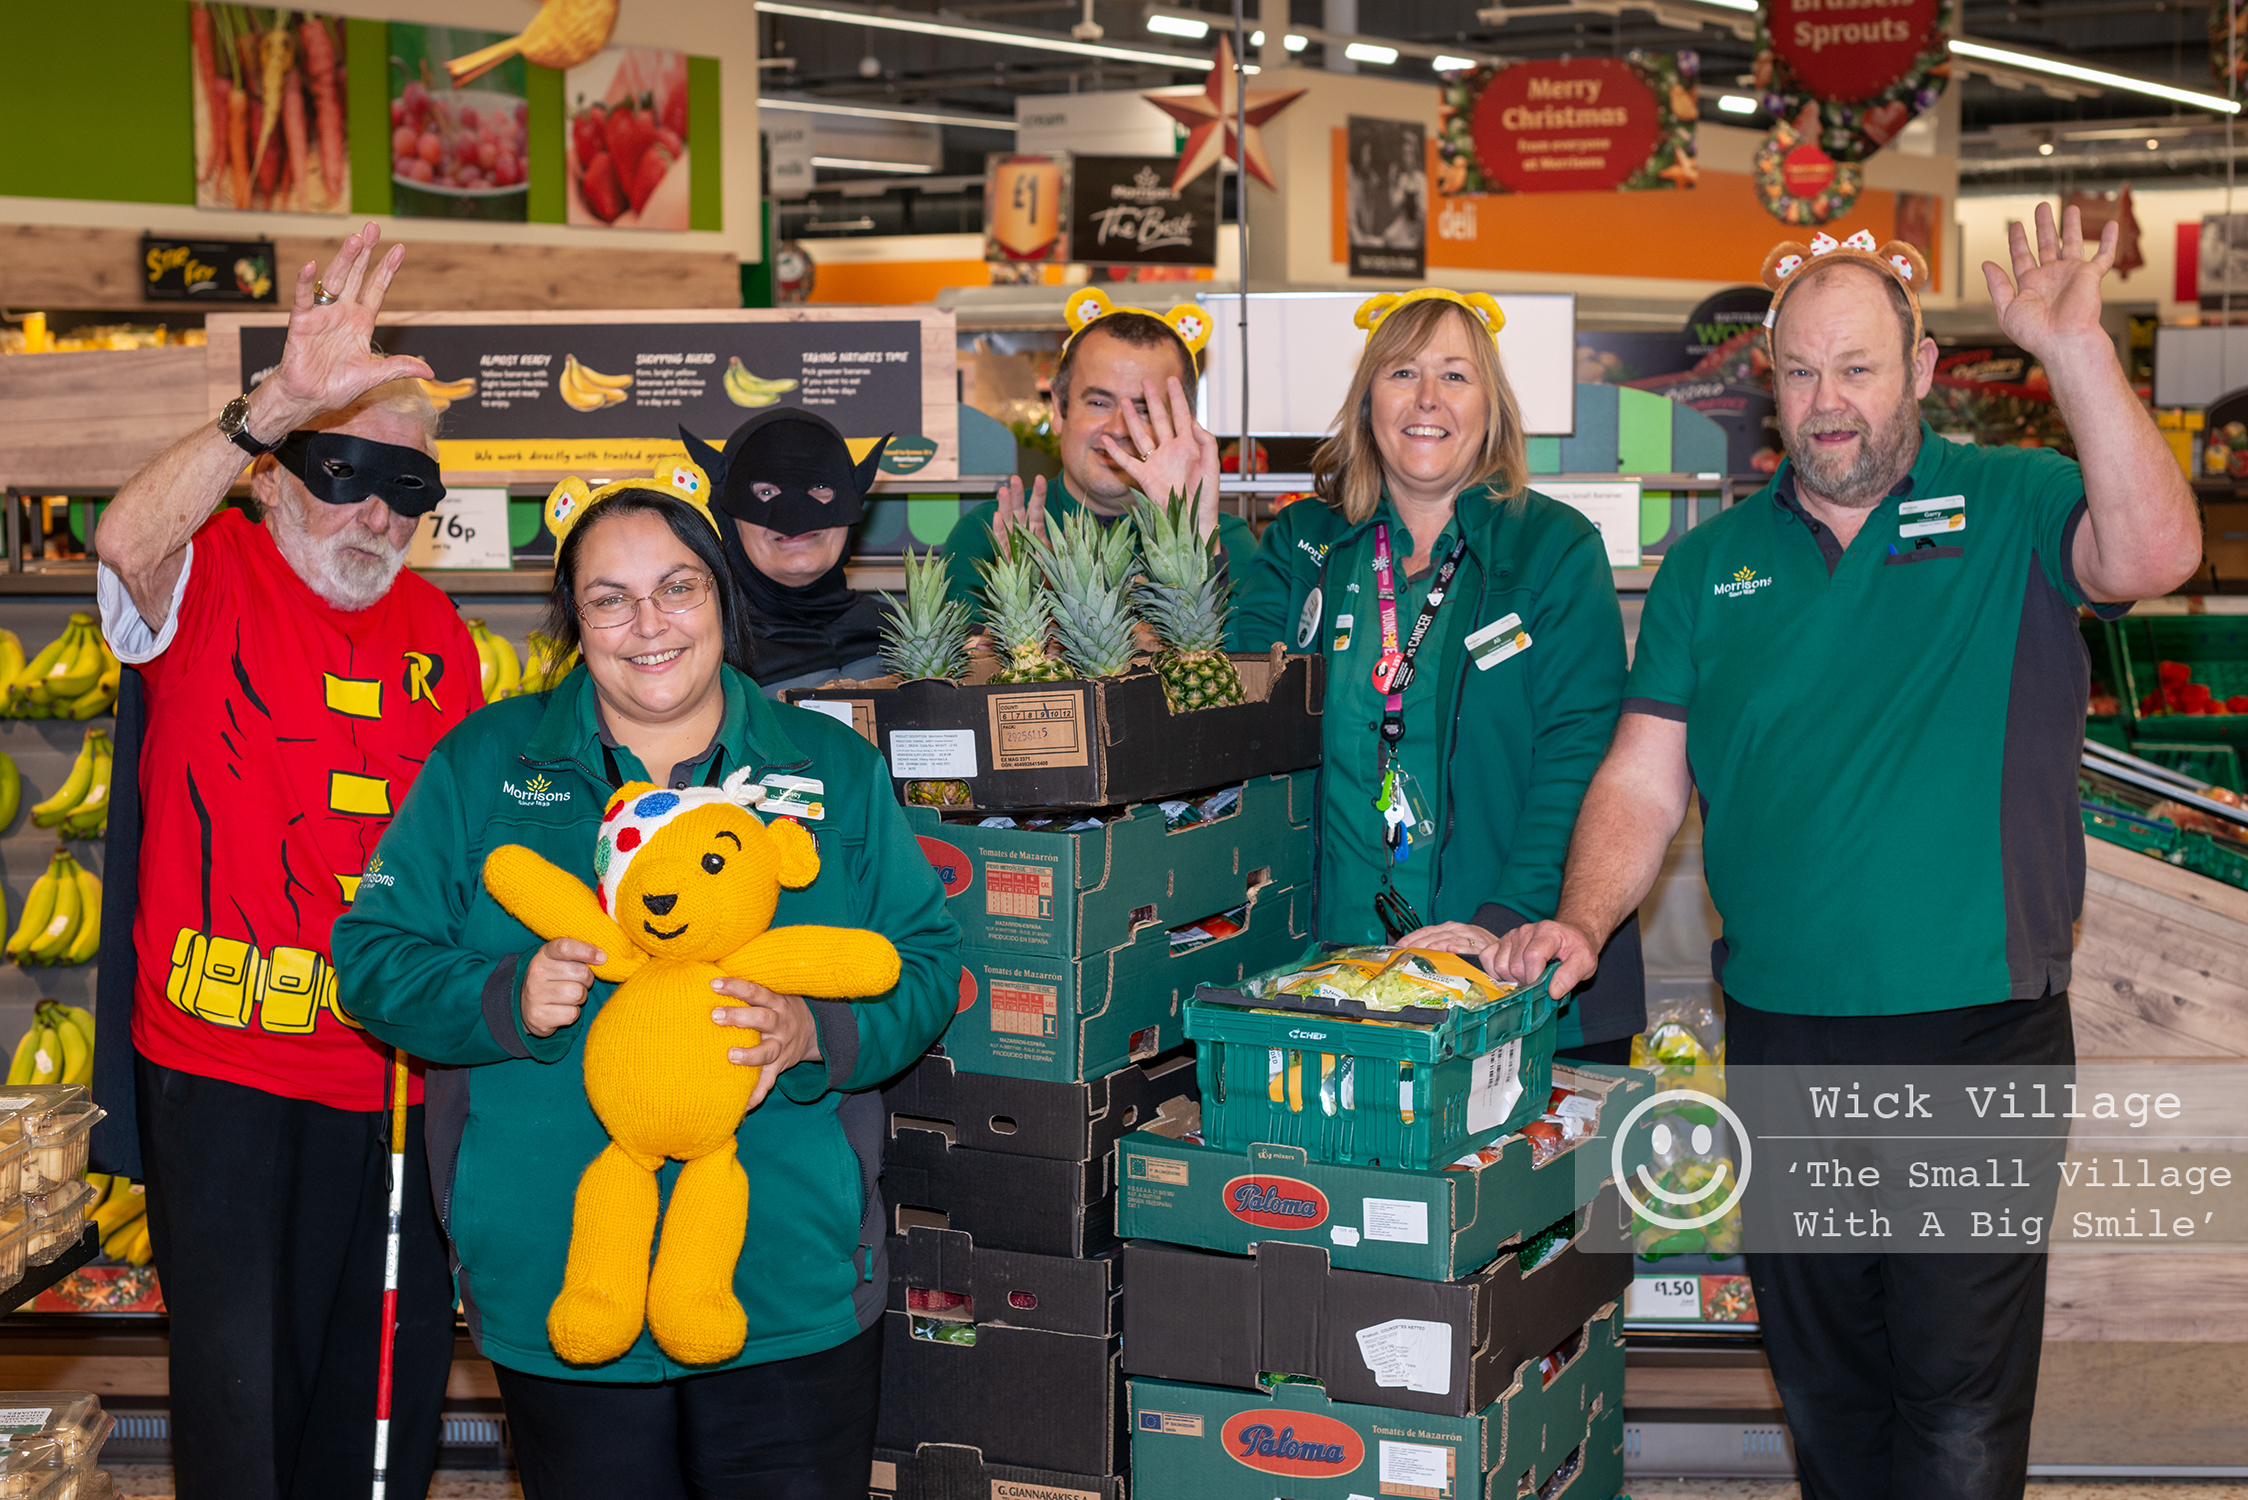 Wick, Littlehampton, West Sussex, UK. 16th November 2018. Staff and volunteers organised a raffle to win a Pudsey Bear in aid of Children In Need.